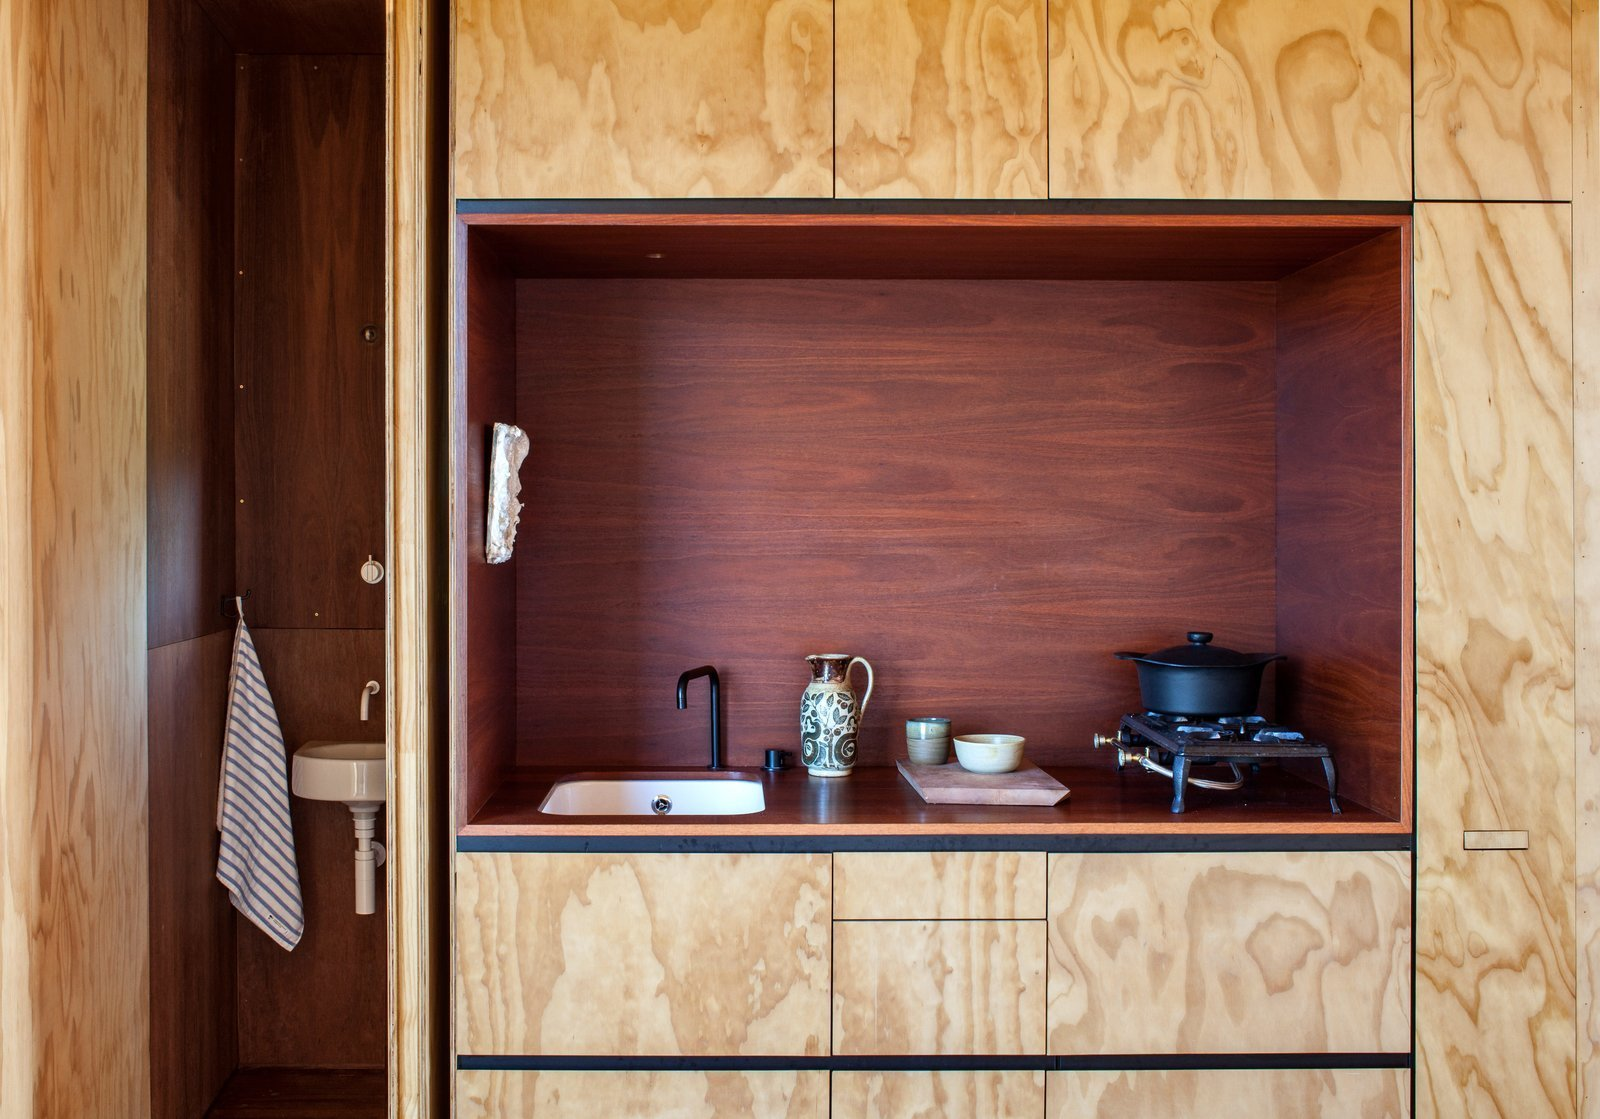 Oiled Jarrah Eucalyptus Contrasts With A Kitchen Niche Of Reddish Brown  Stained Plywood In This